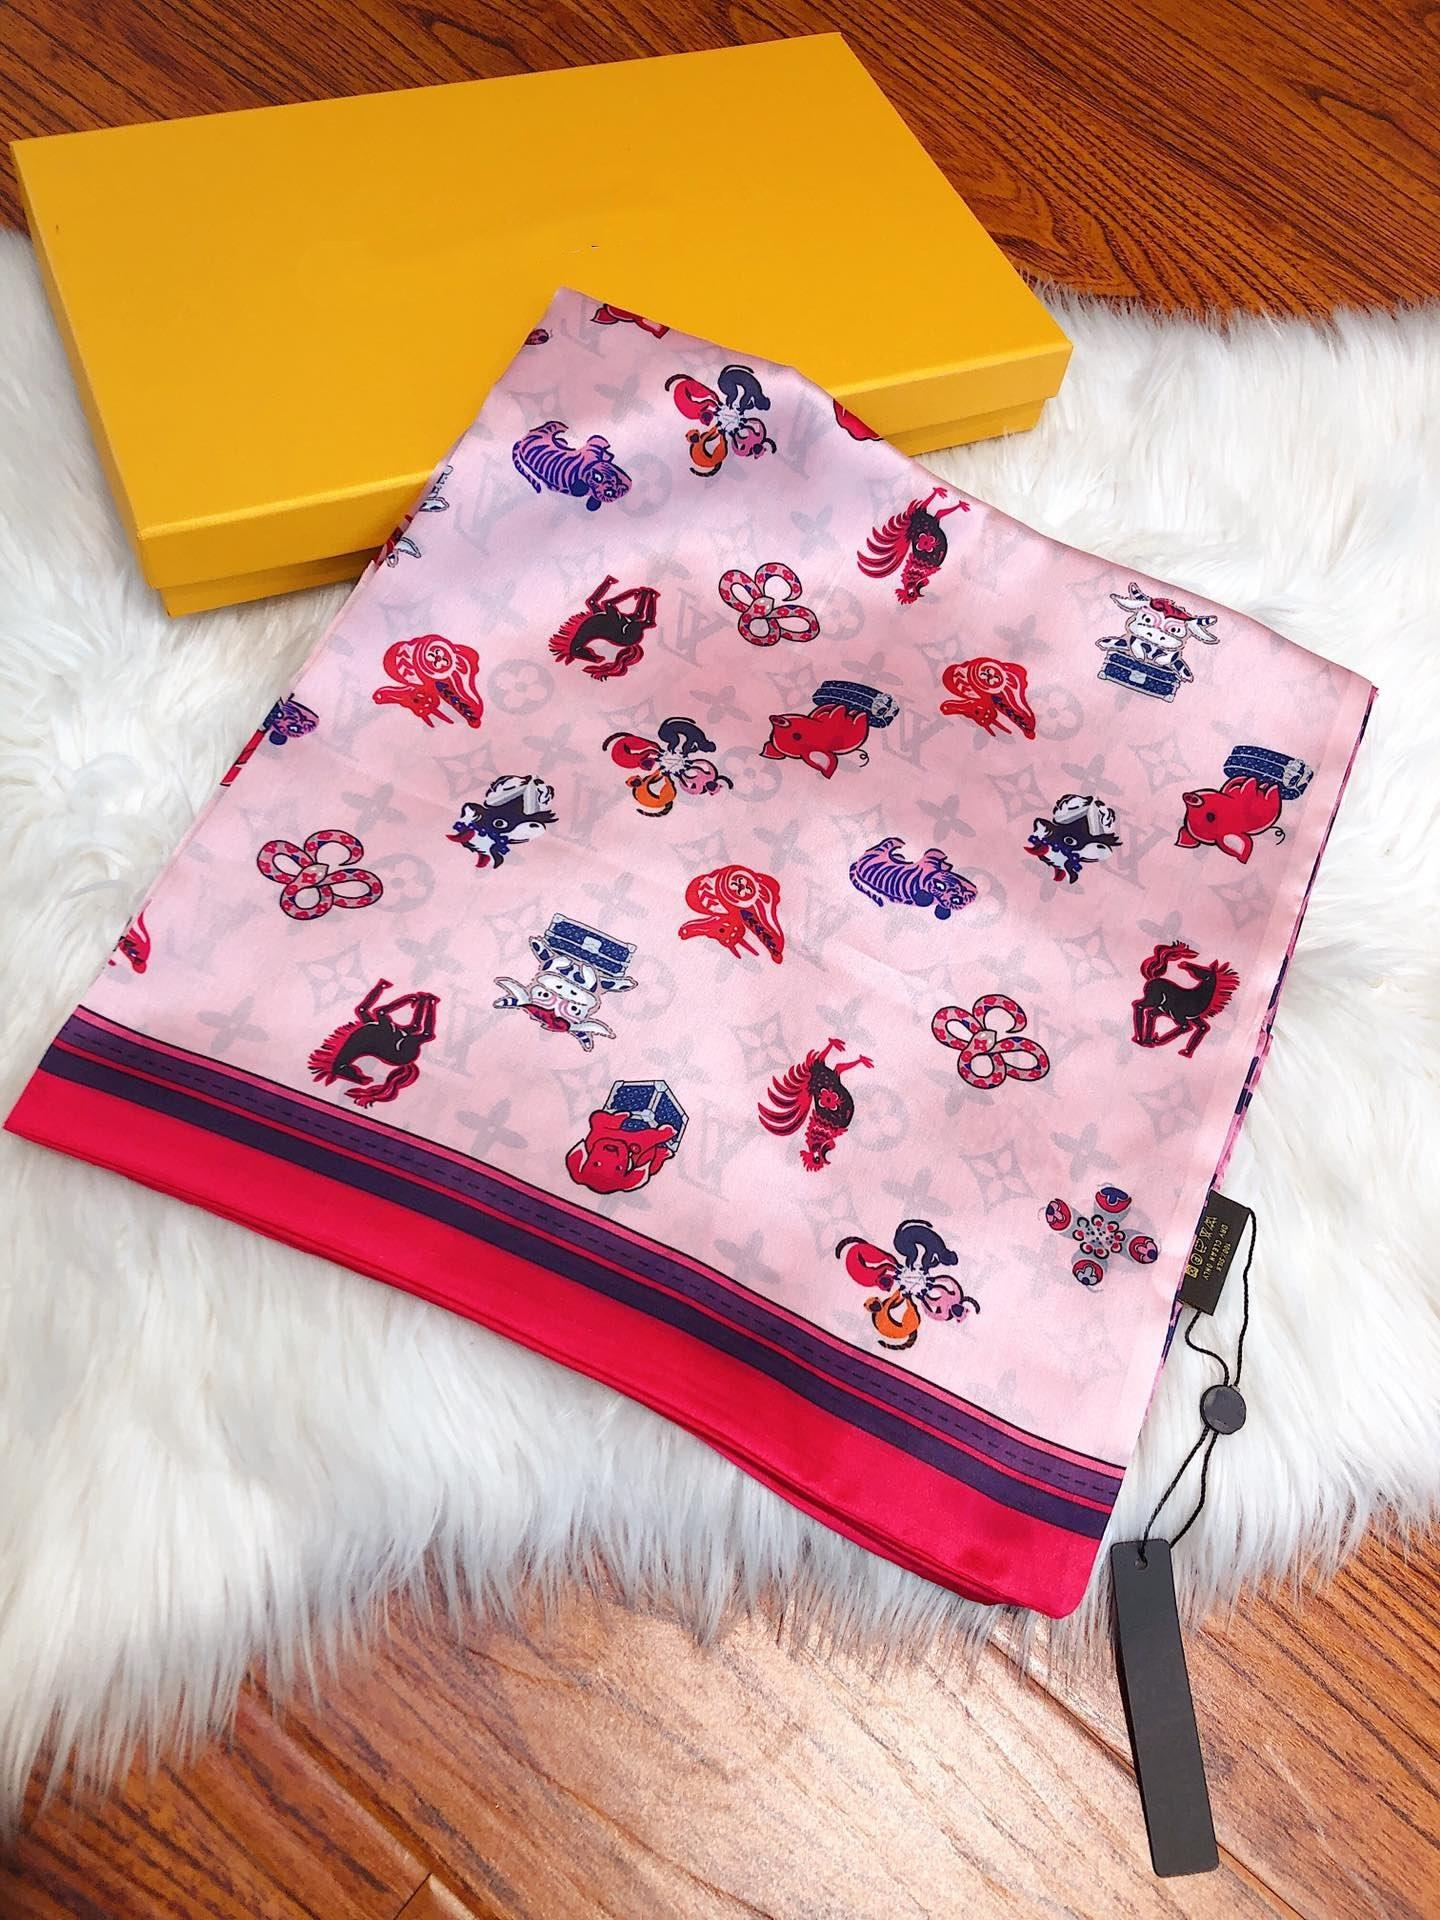 Double satin chiffon 2019 New Fashionable Hot Air Balloon Print Scarf Foulard Femme Hijab Scarves Wrap For Womens Mother Gifts